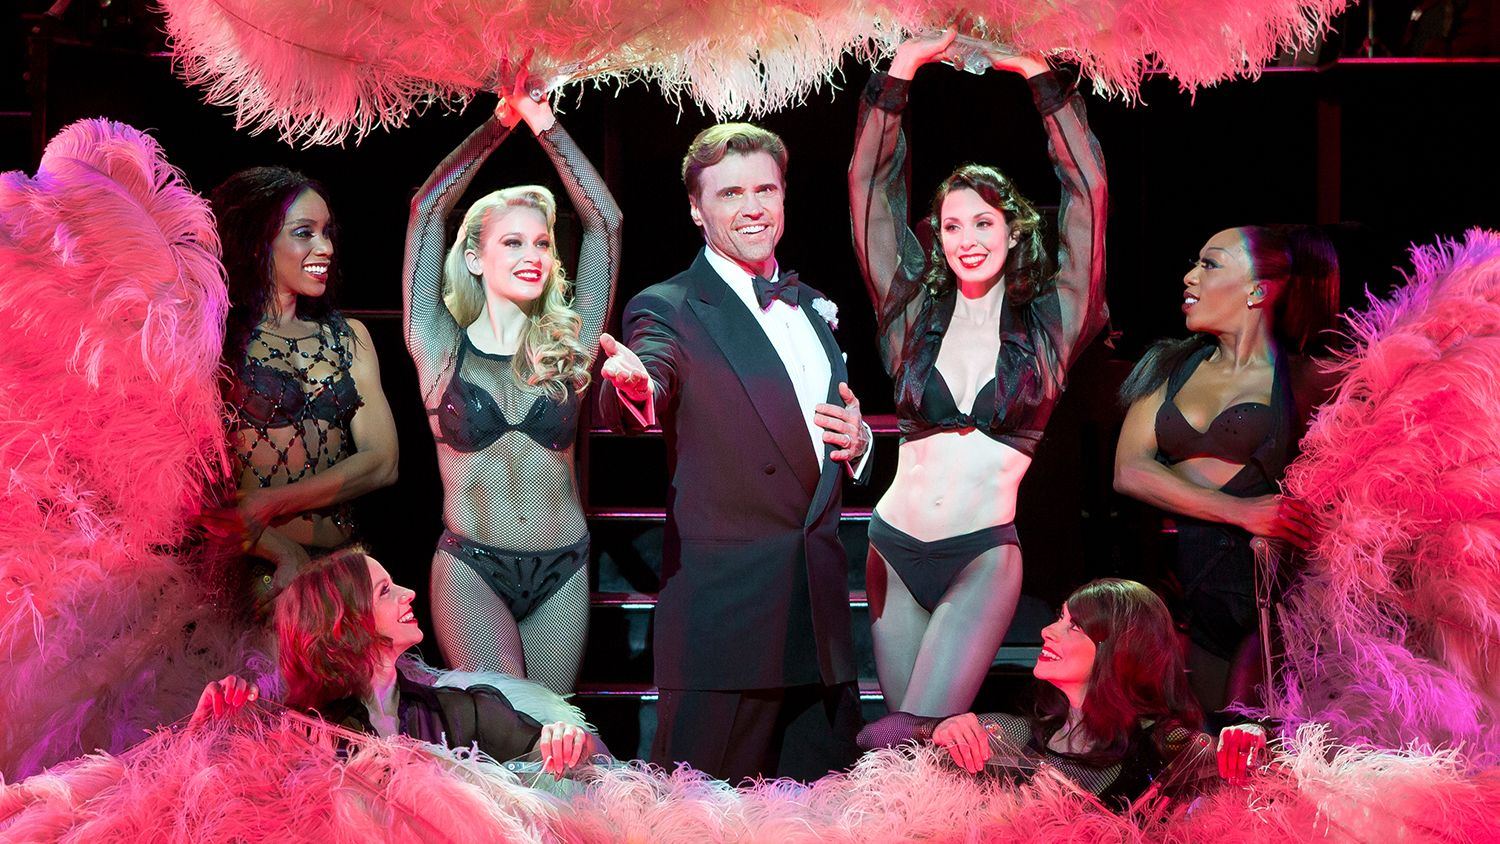 Man in tuxedo surrounded by women dancers in Chicago, the musical